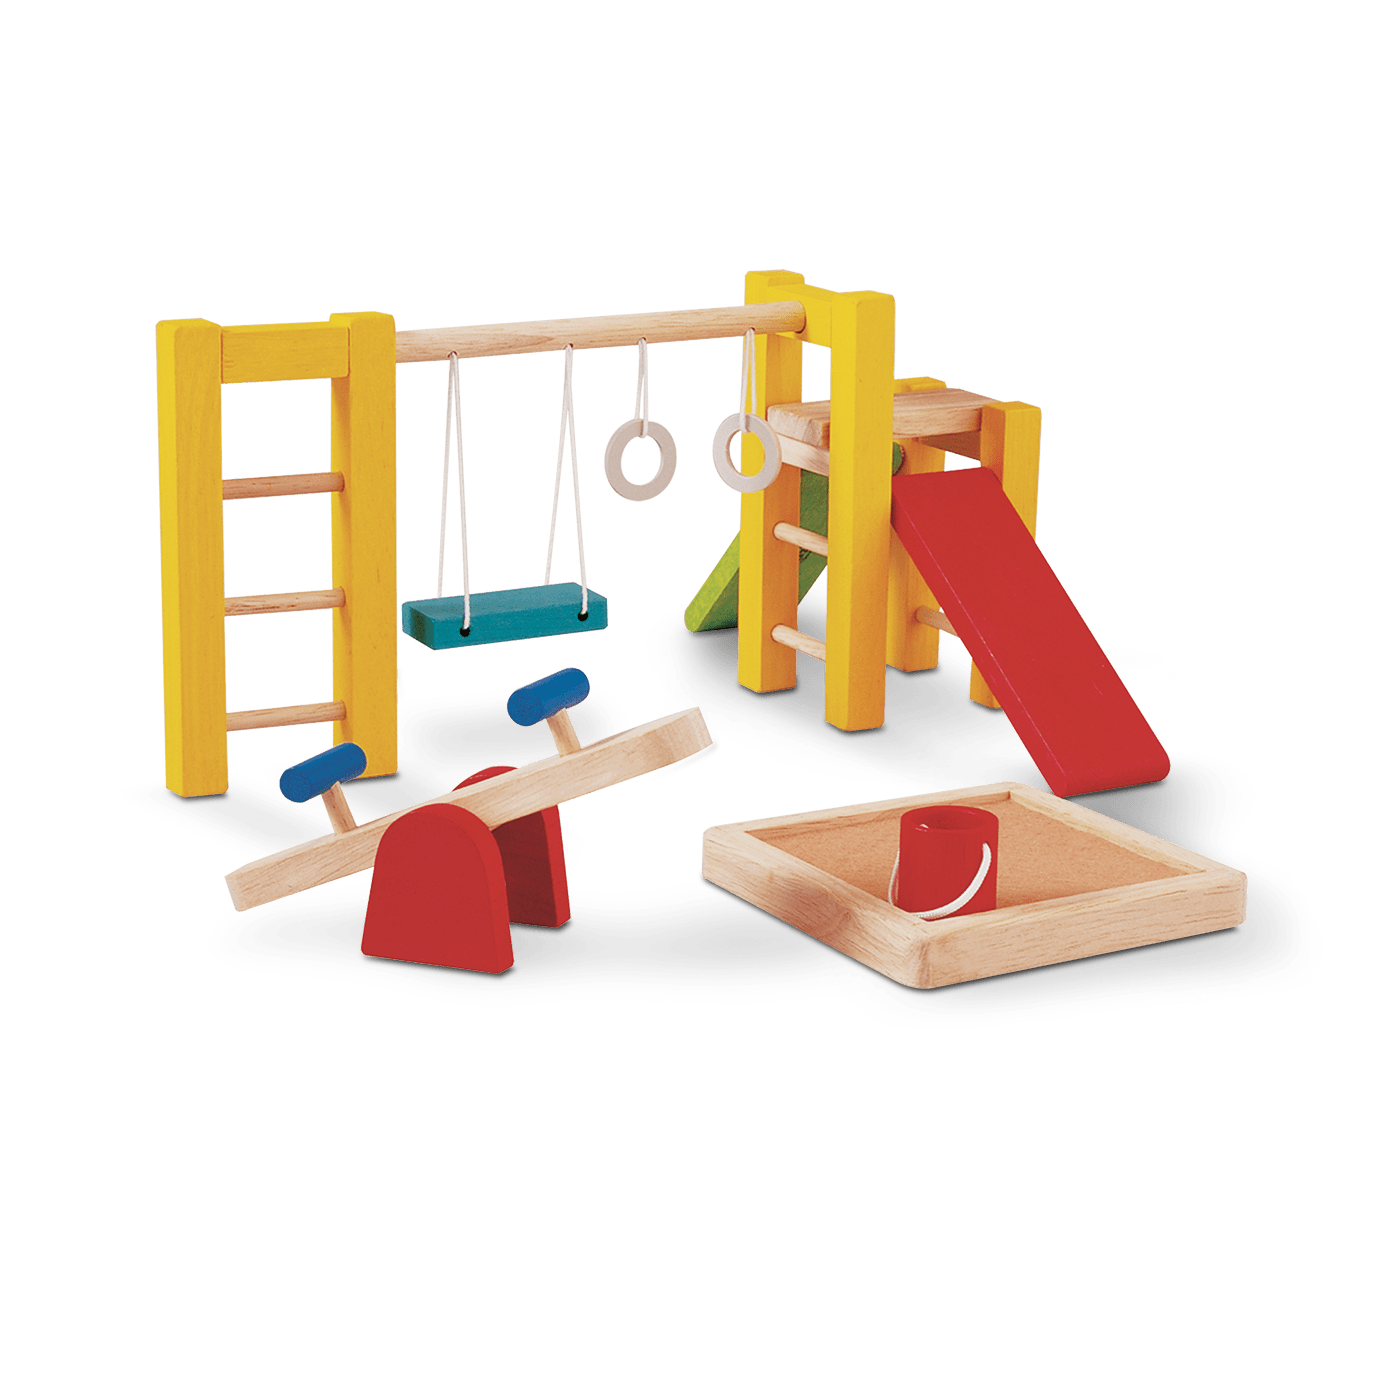 7153_PlanToys_PLAYGROUND_Pretend_Play_Imagination_Coordination_Language_and_Communications_Social_Fine_Motor_3yrs_Wooden_toys_Education_toys_Safety_Toys_Non-toxic_0.png